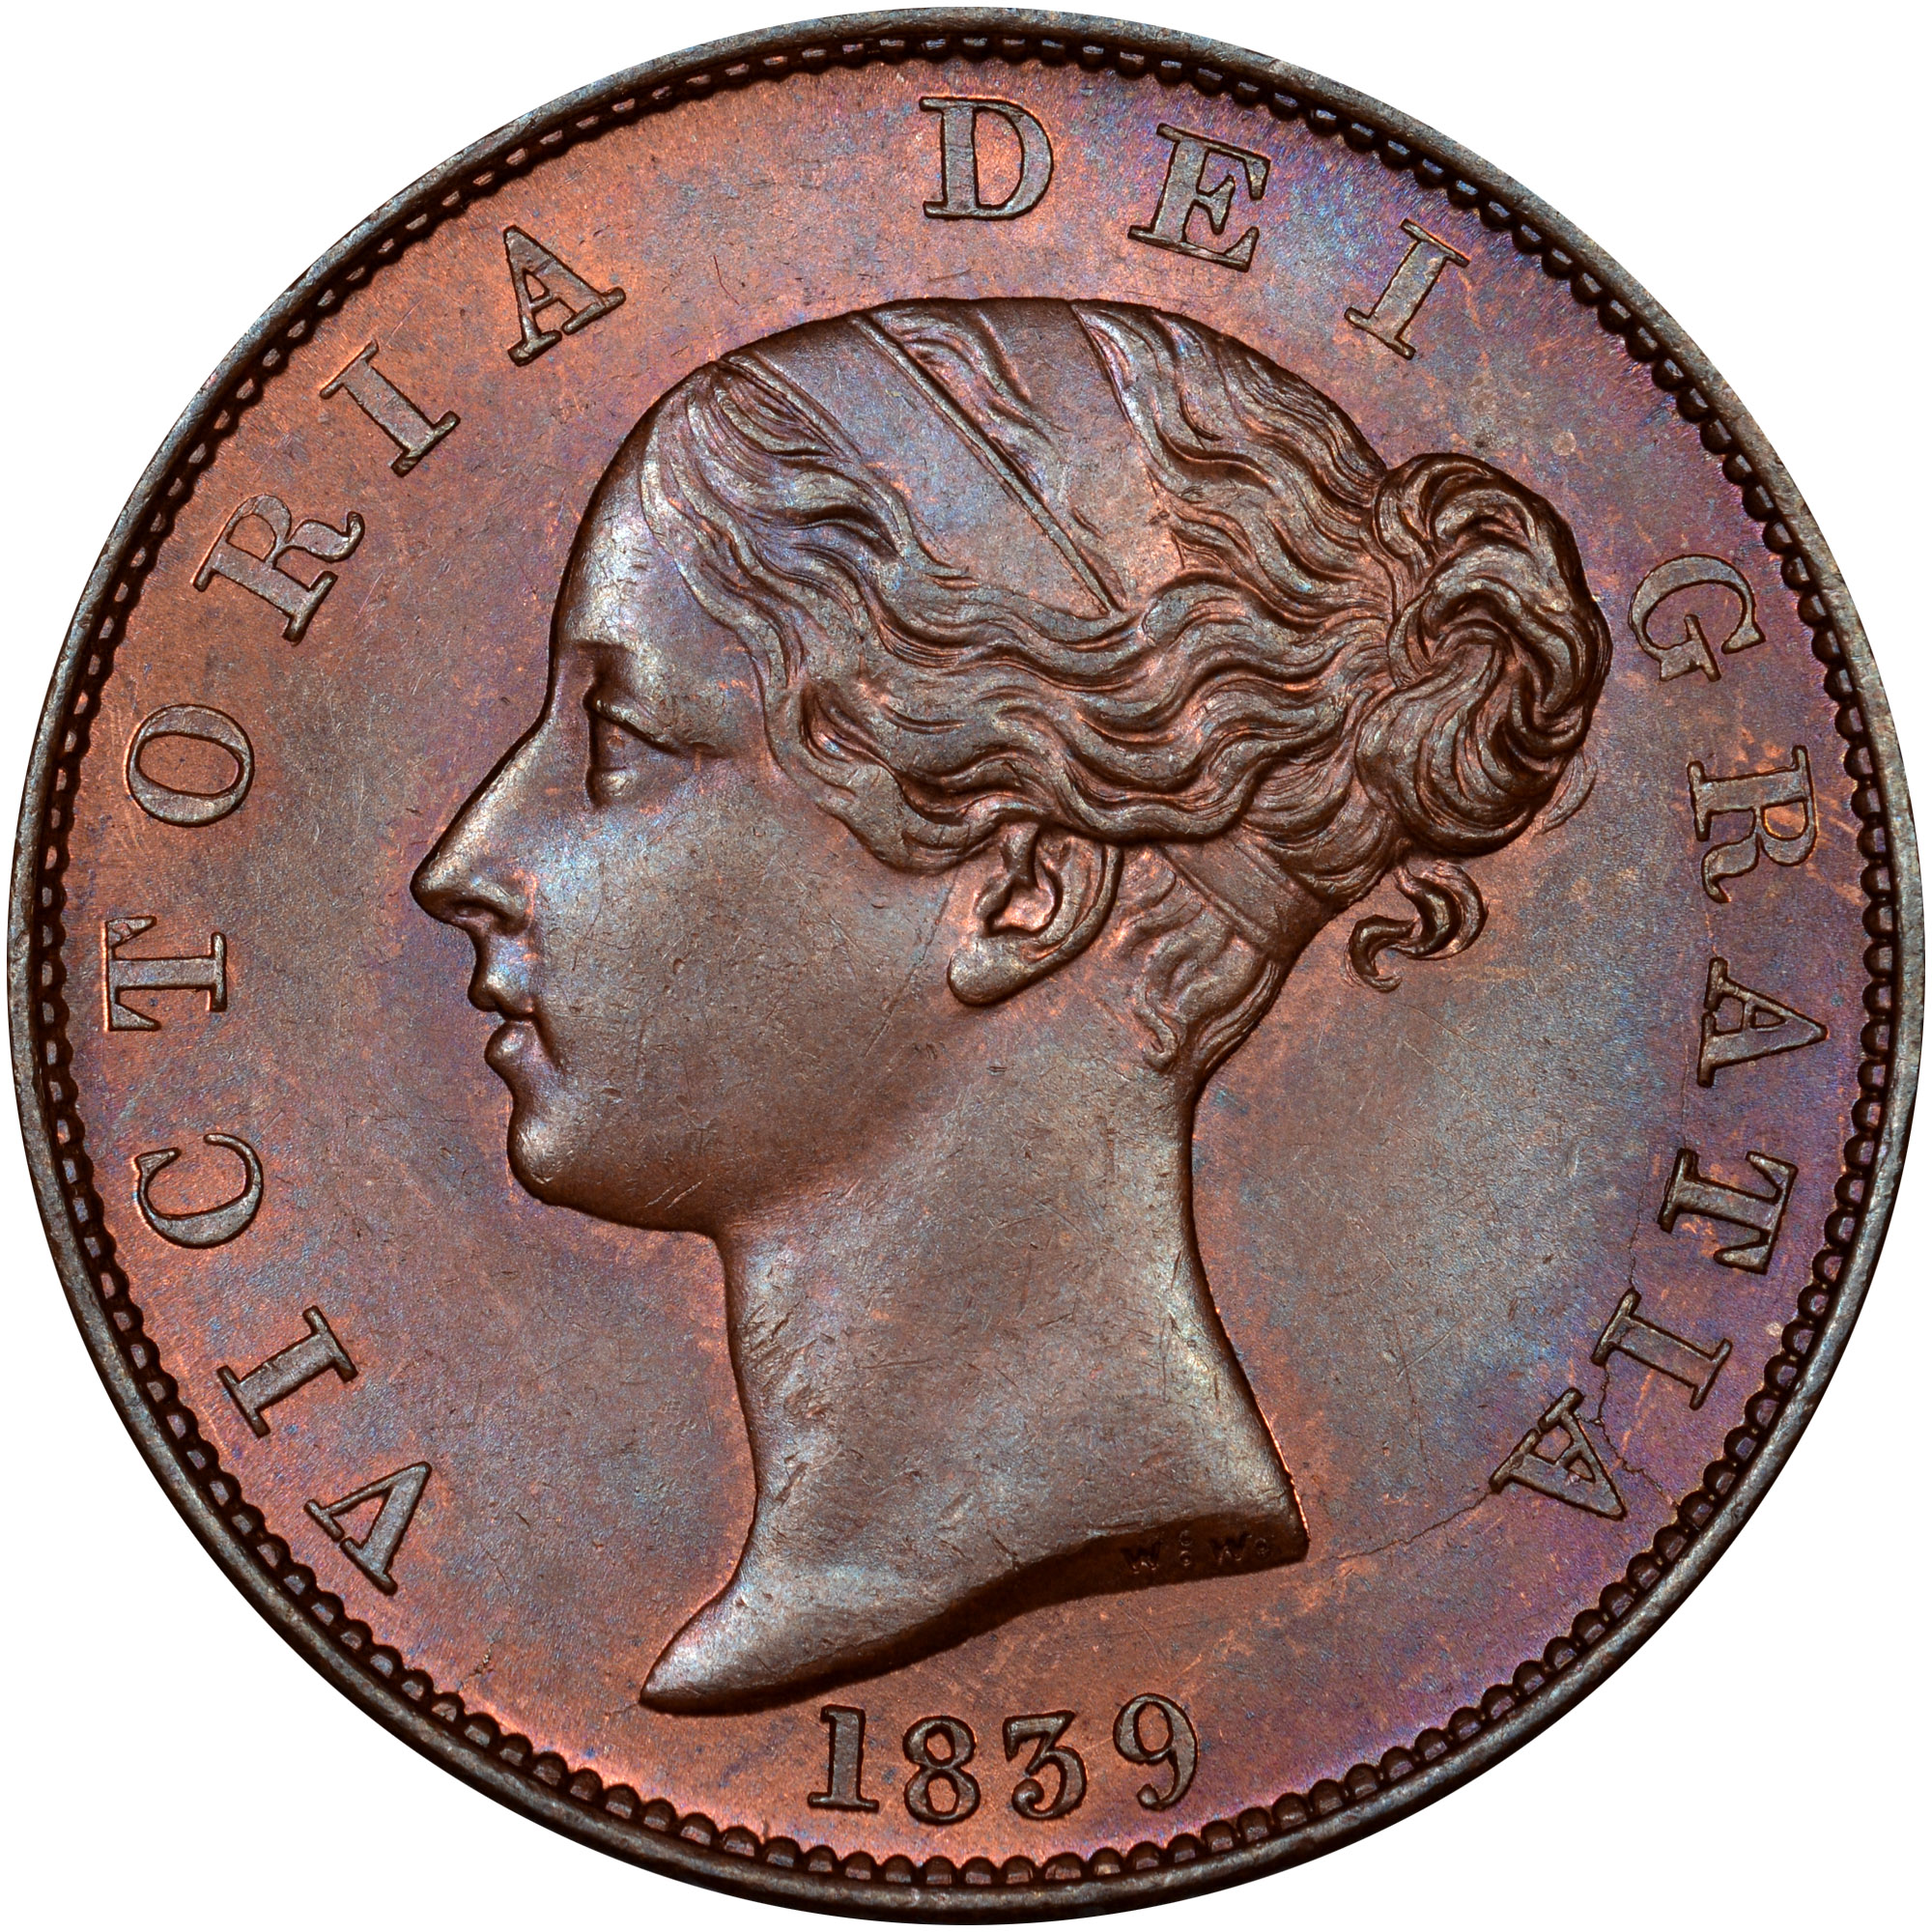 Isle Of Man 1/2 Penny obverse